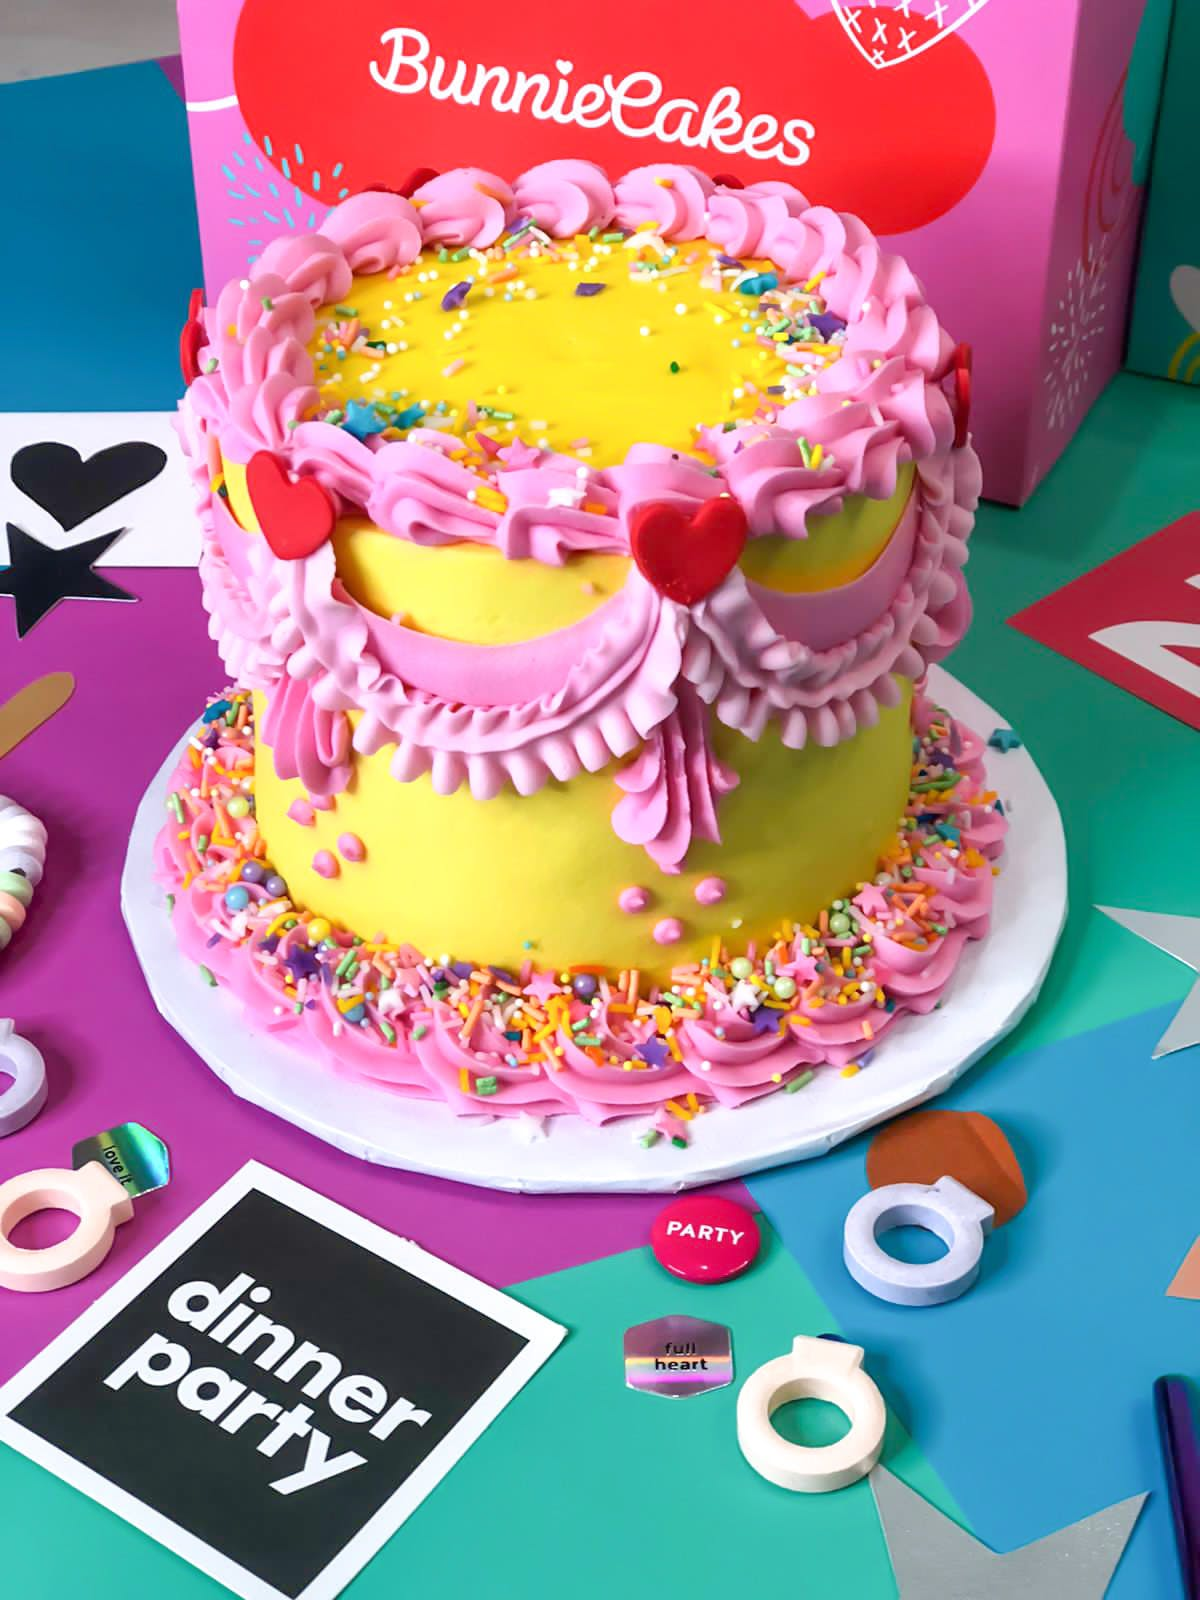 a plate of birthday cake on a table